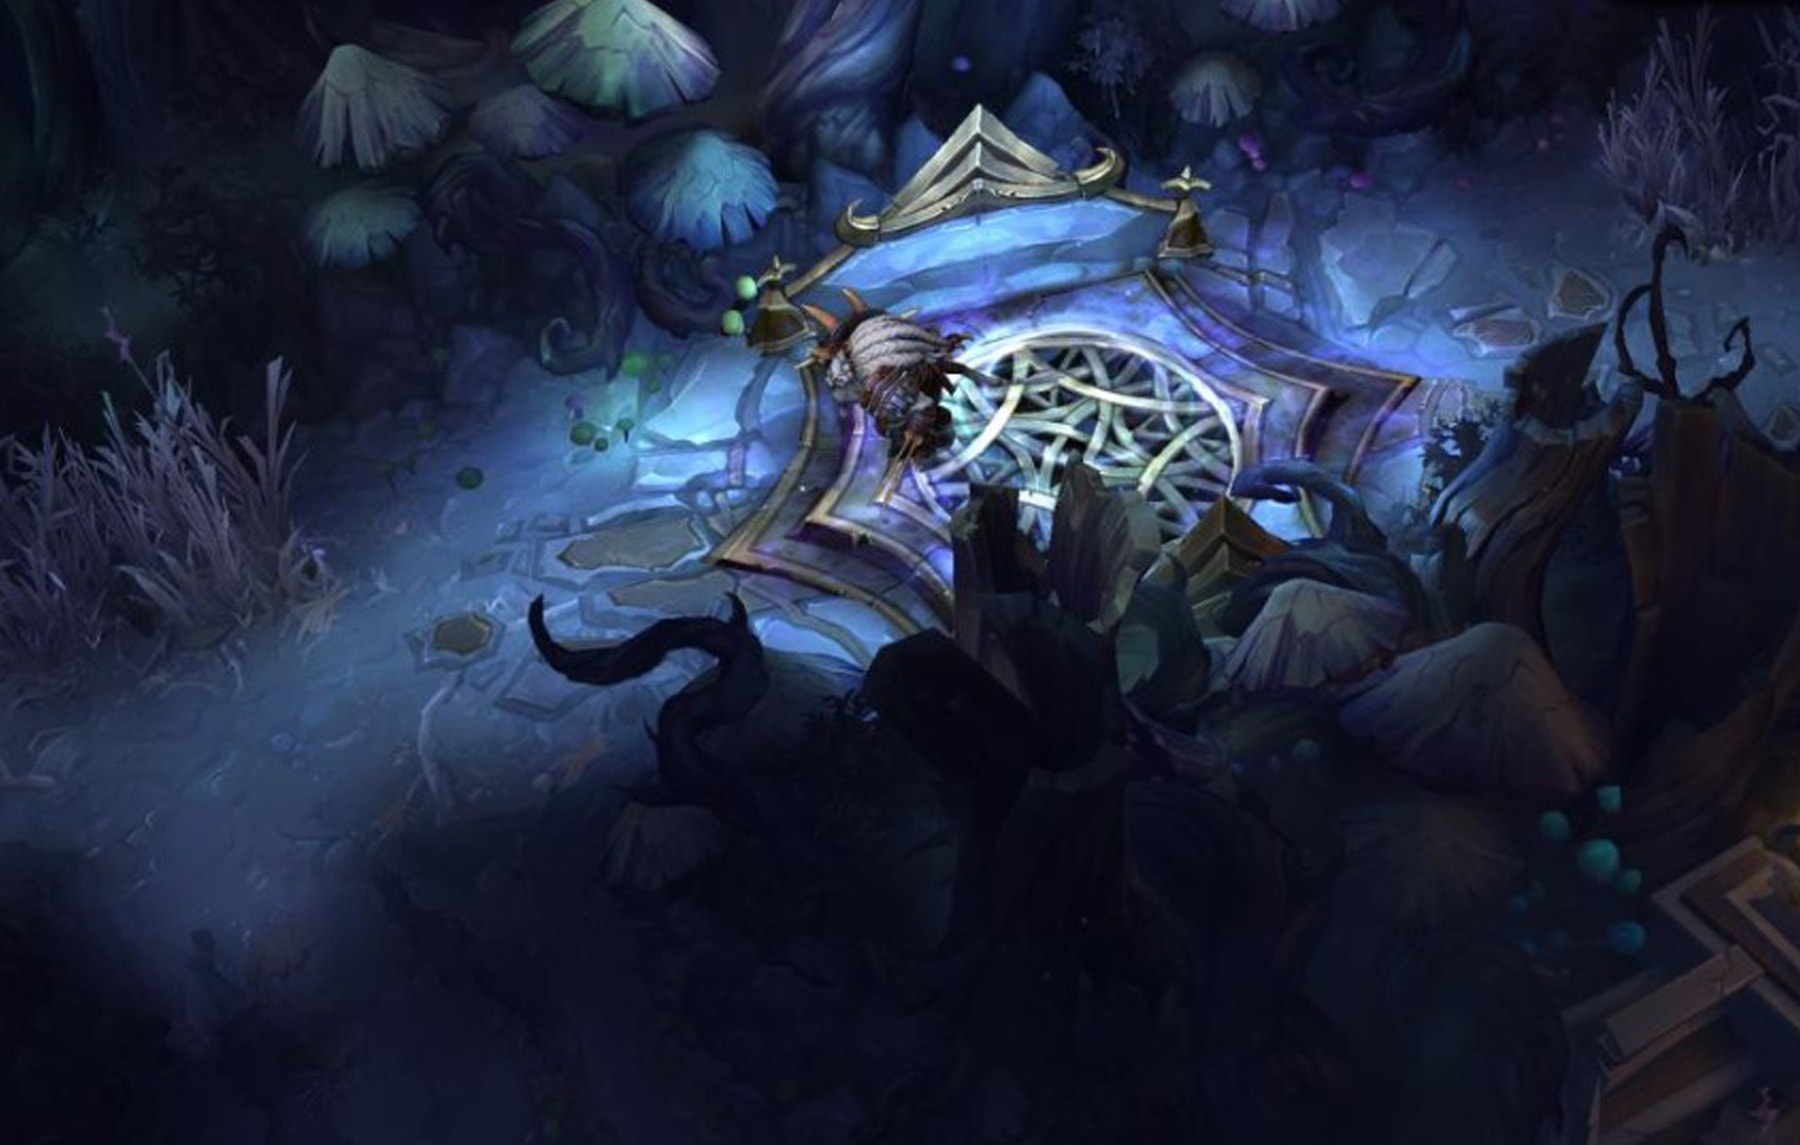 A darkened forest in the Twisted Treeline map from League of Legends